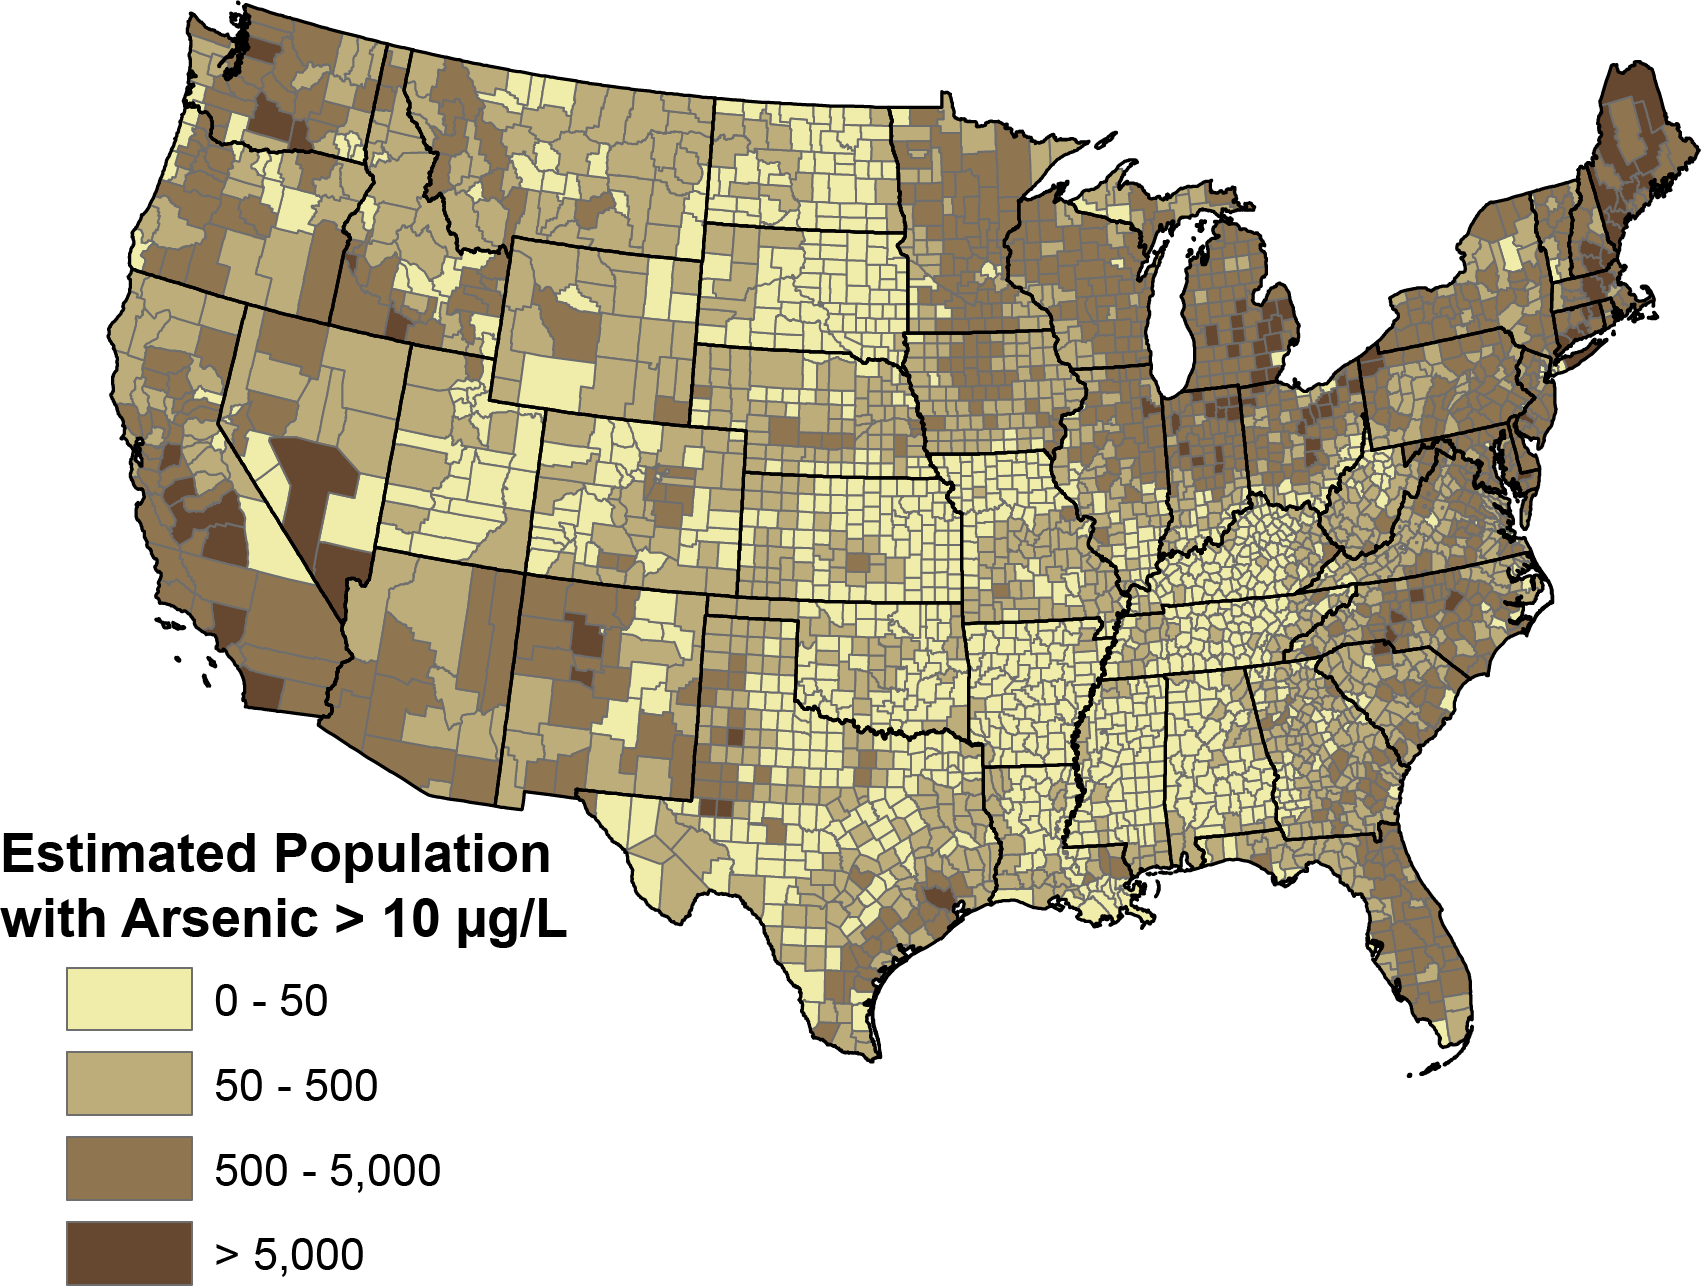 5 States with High Levels of Arsenic in Groundwater